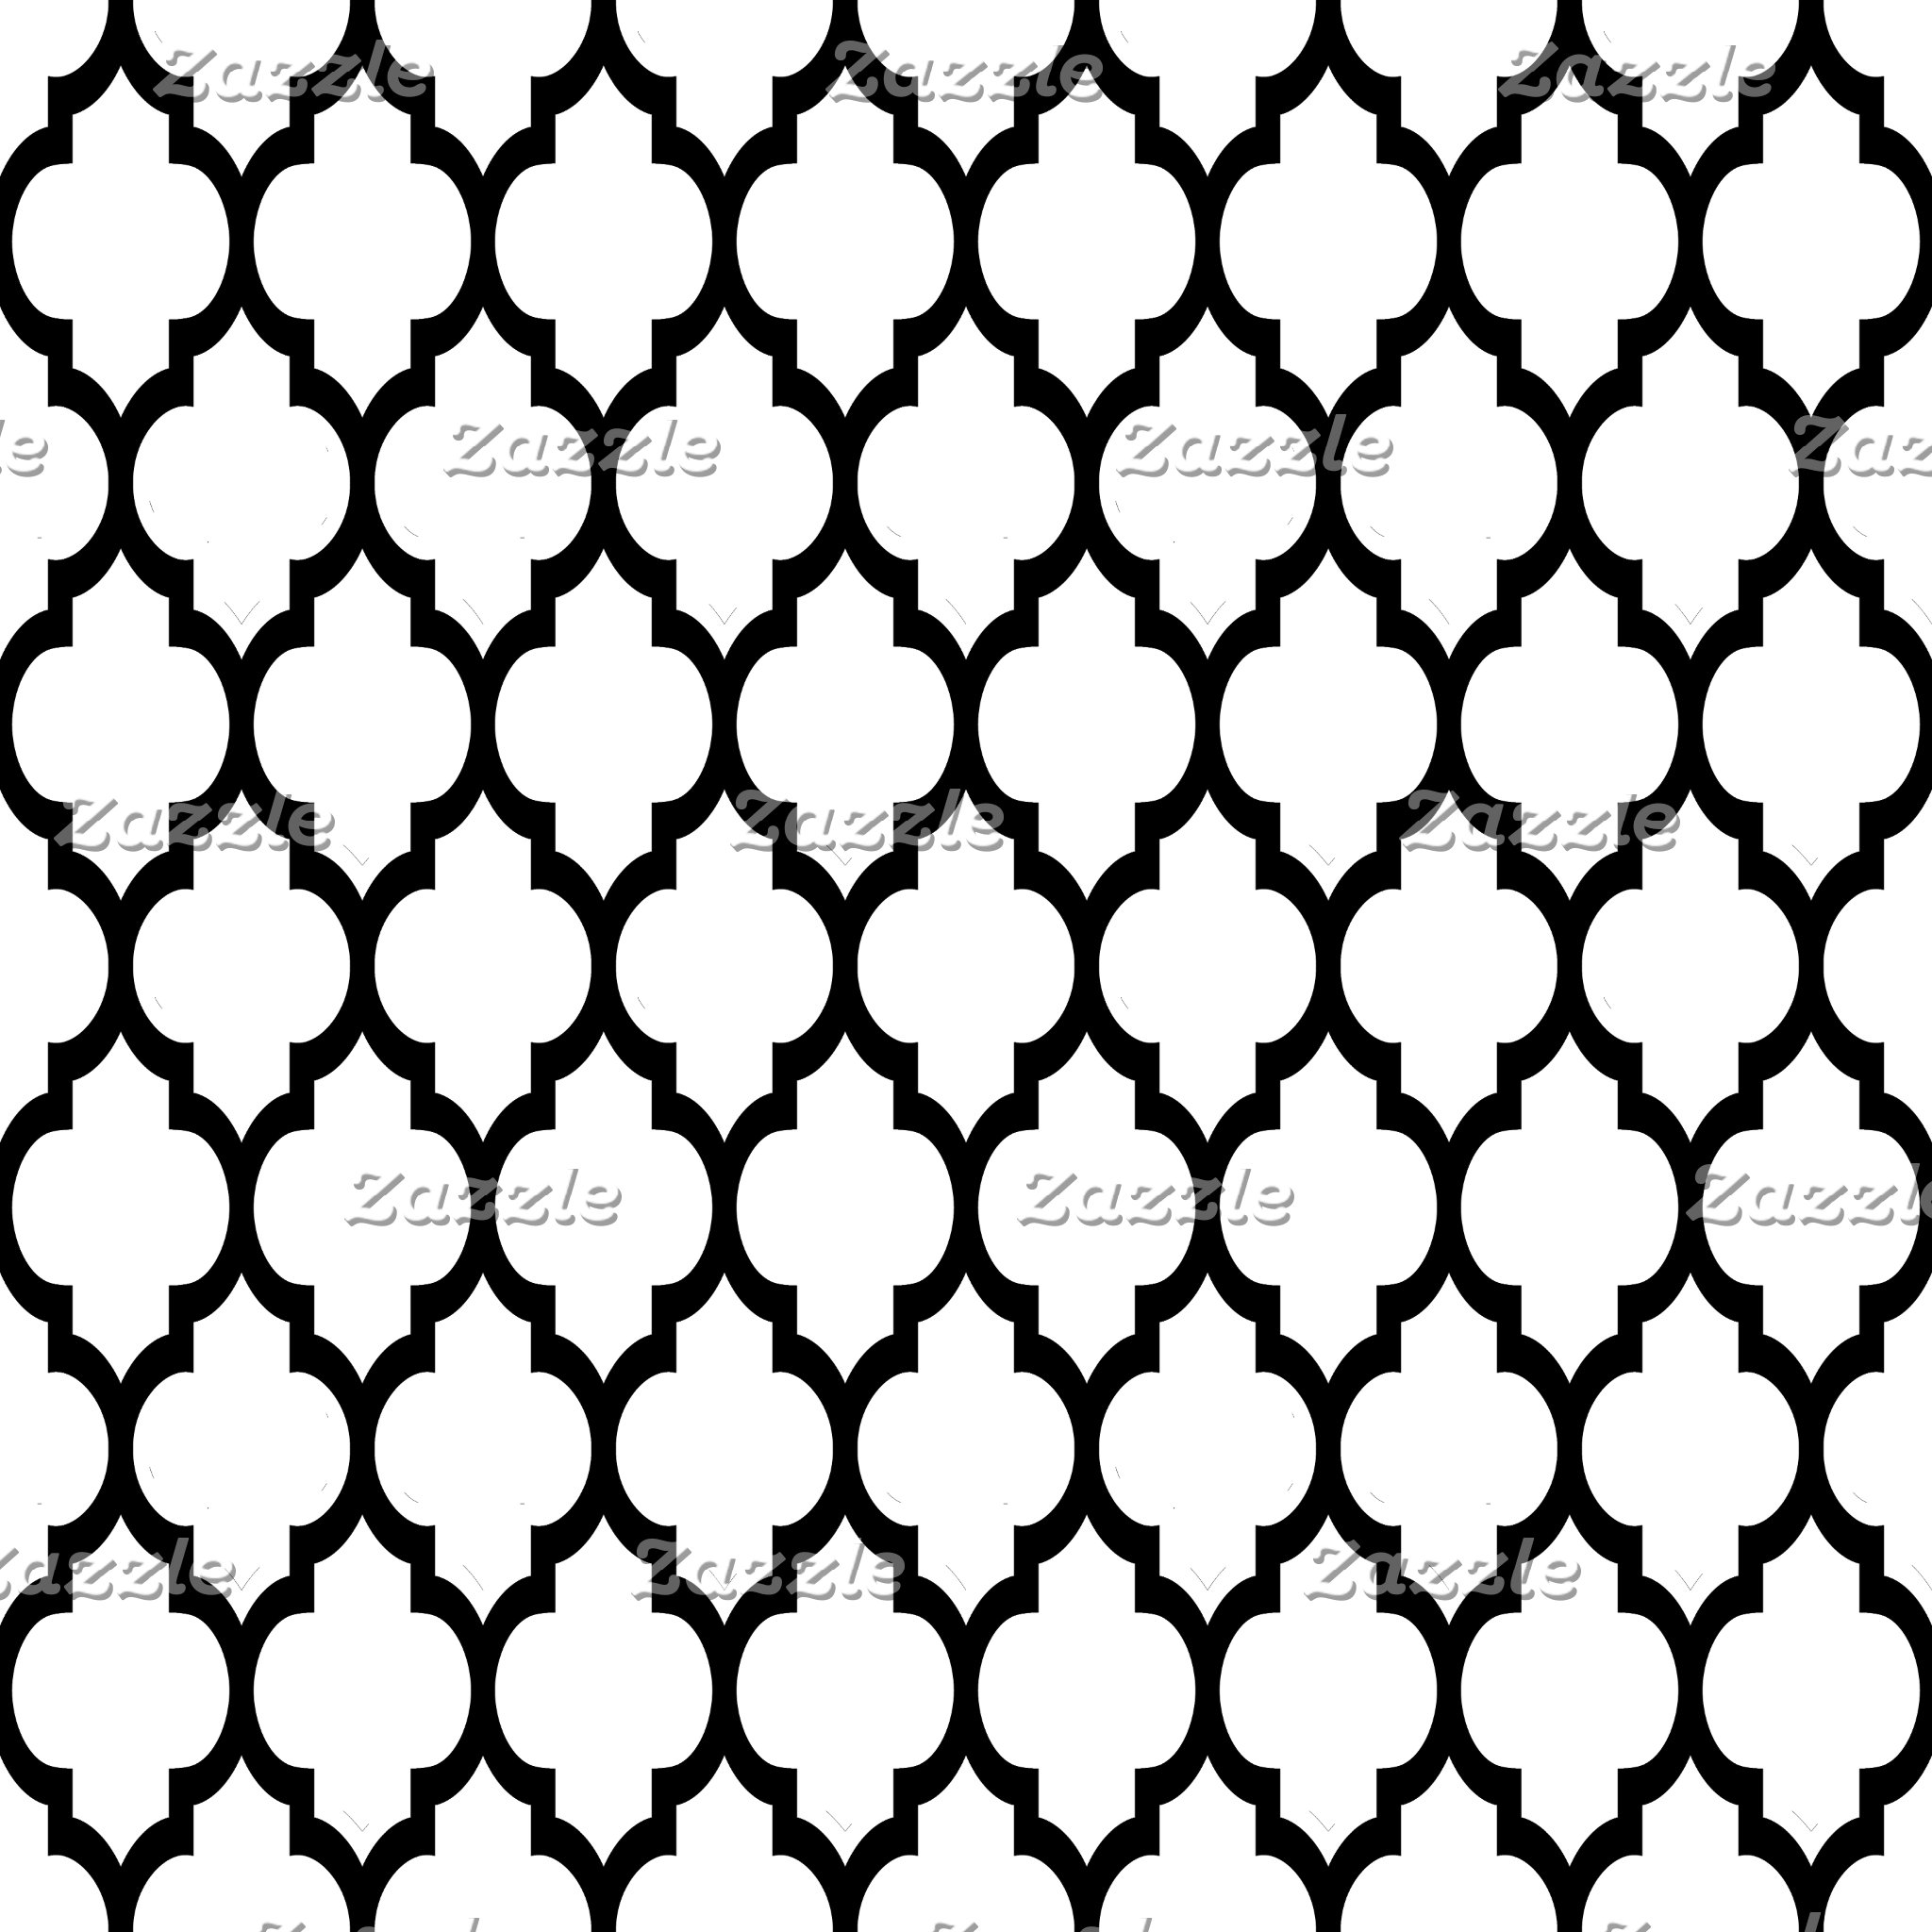 Pattern #7 Mortar Border